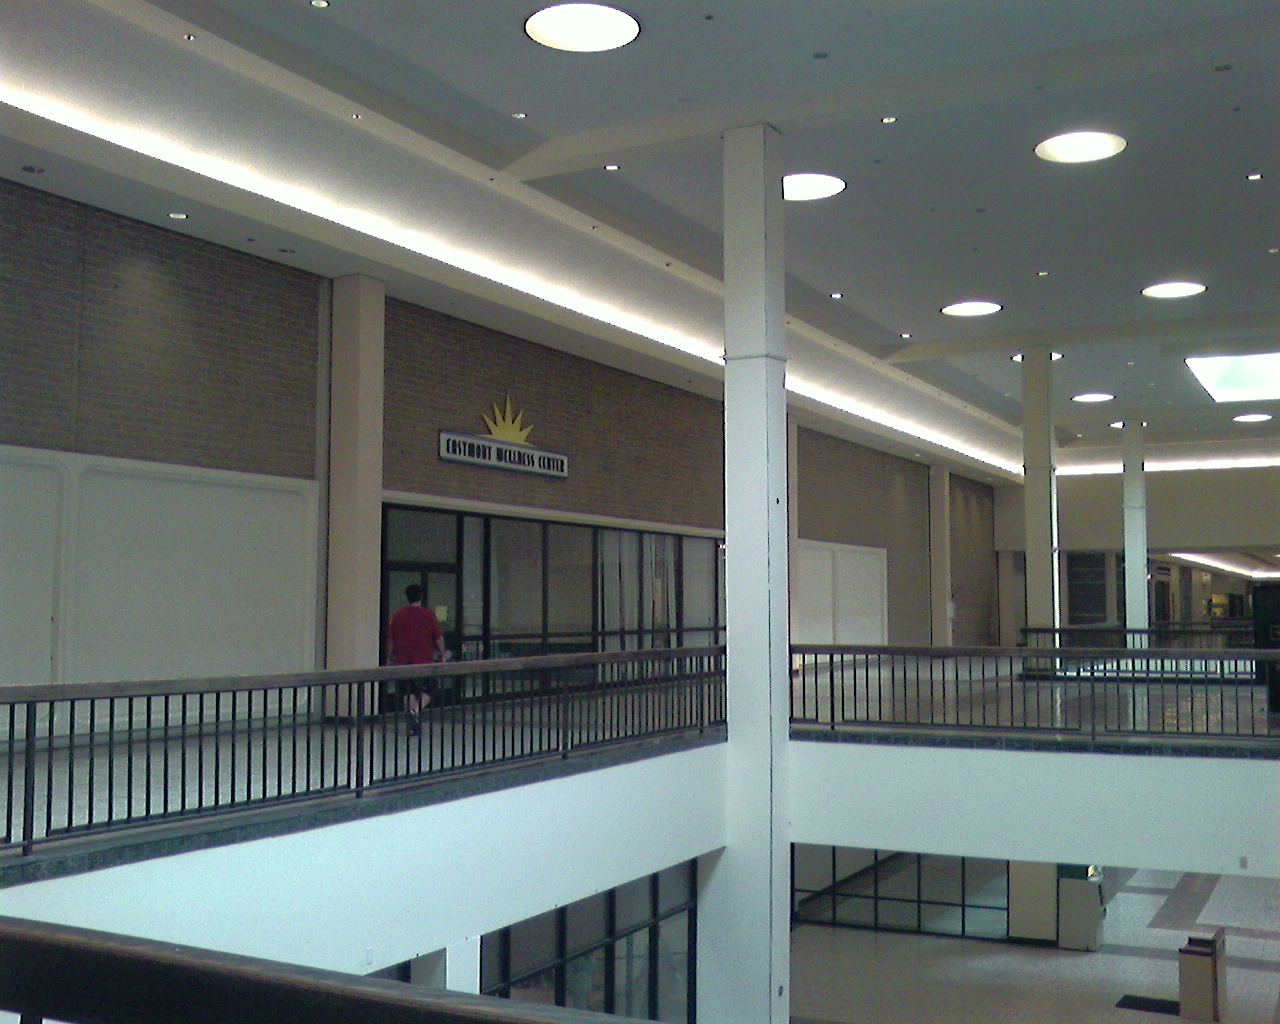 Eastmont Mall in Oakland, CA